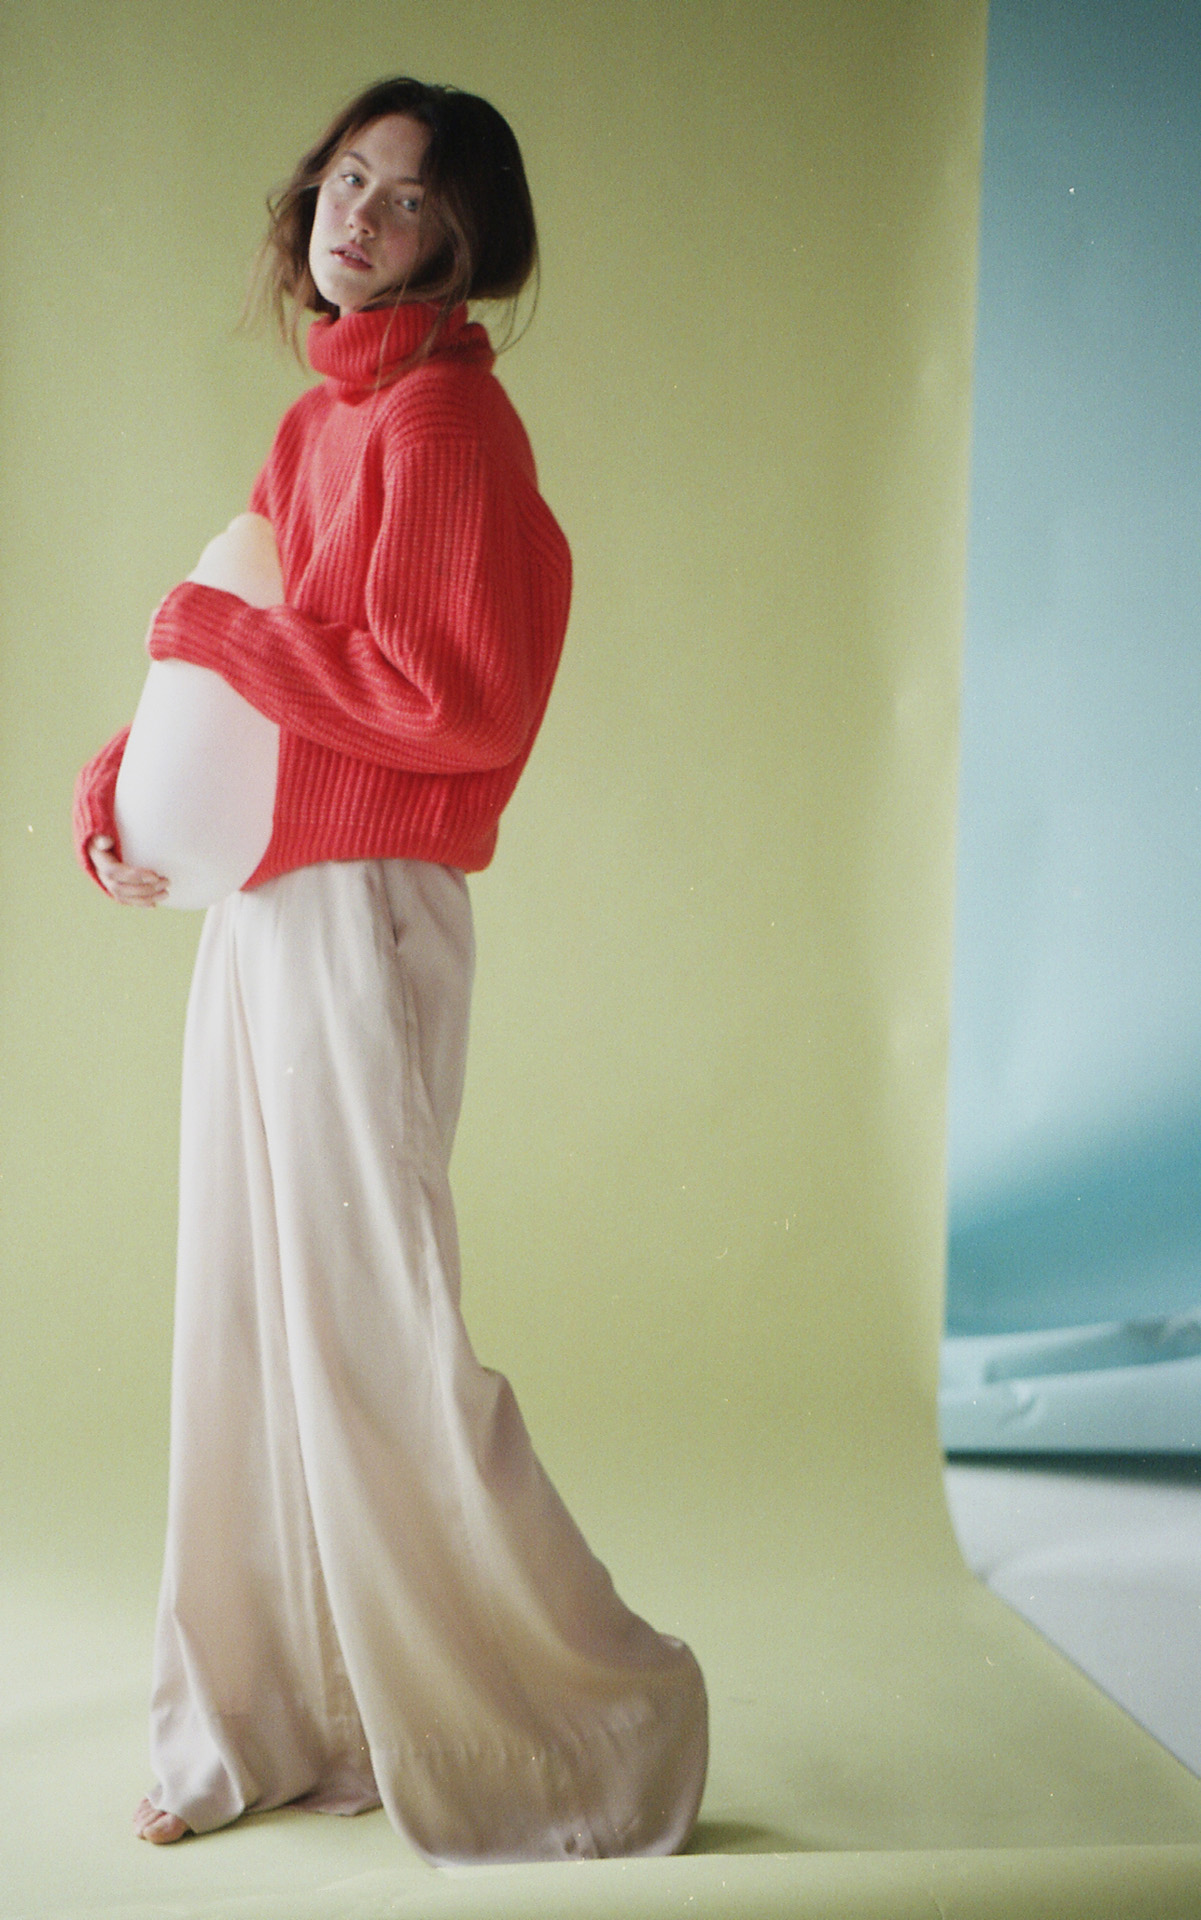 female model Jana standing on light green paper background holding white vase against her wearing red knit turtleneck sweater and large white pants barefoot looking at camera photographed by Naomie from Studio TB for project Sculpting Jana